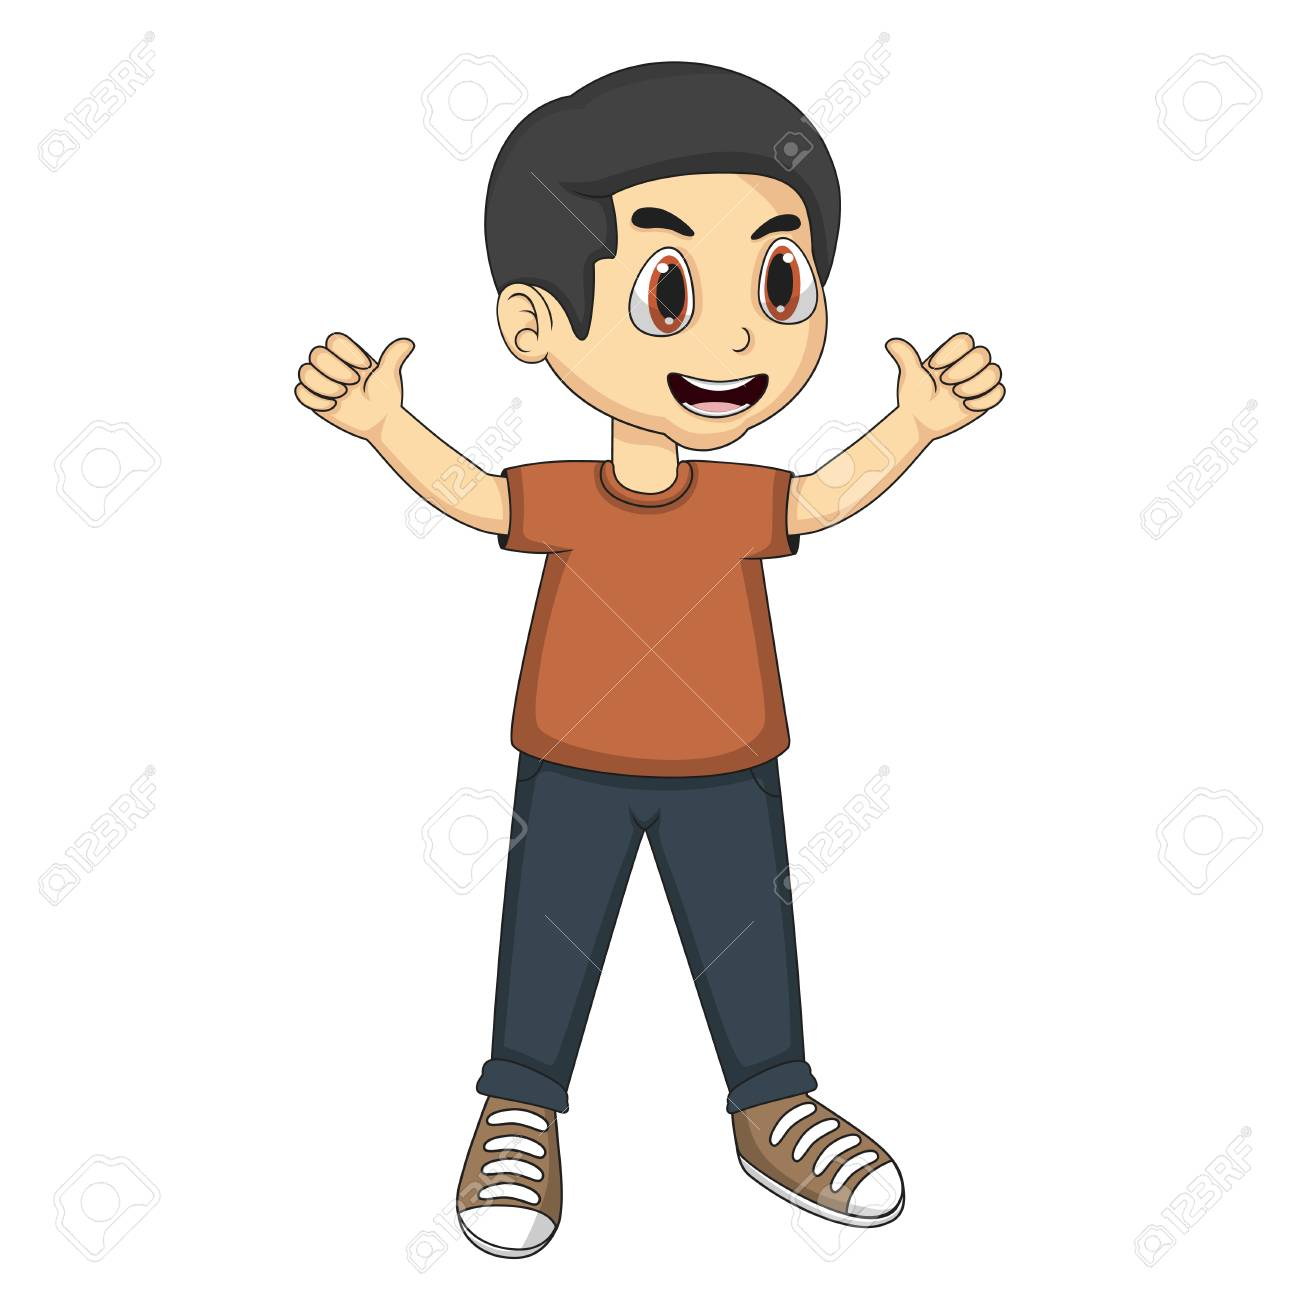 little boy cartoon with two tumbs up royalty free cliparts vectors